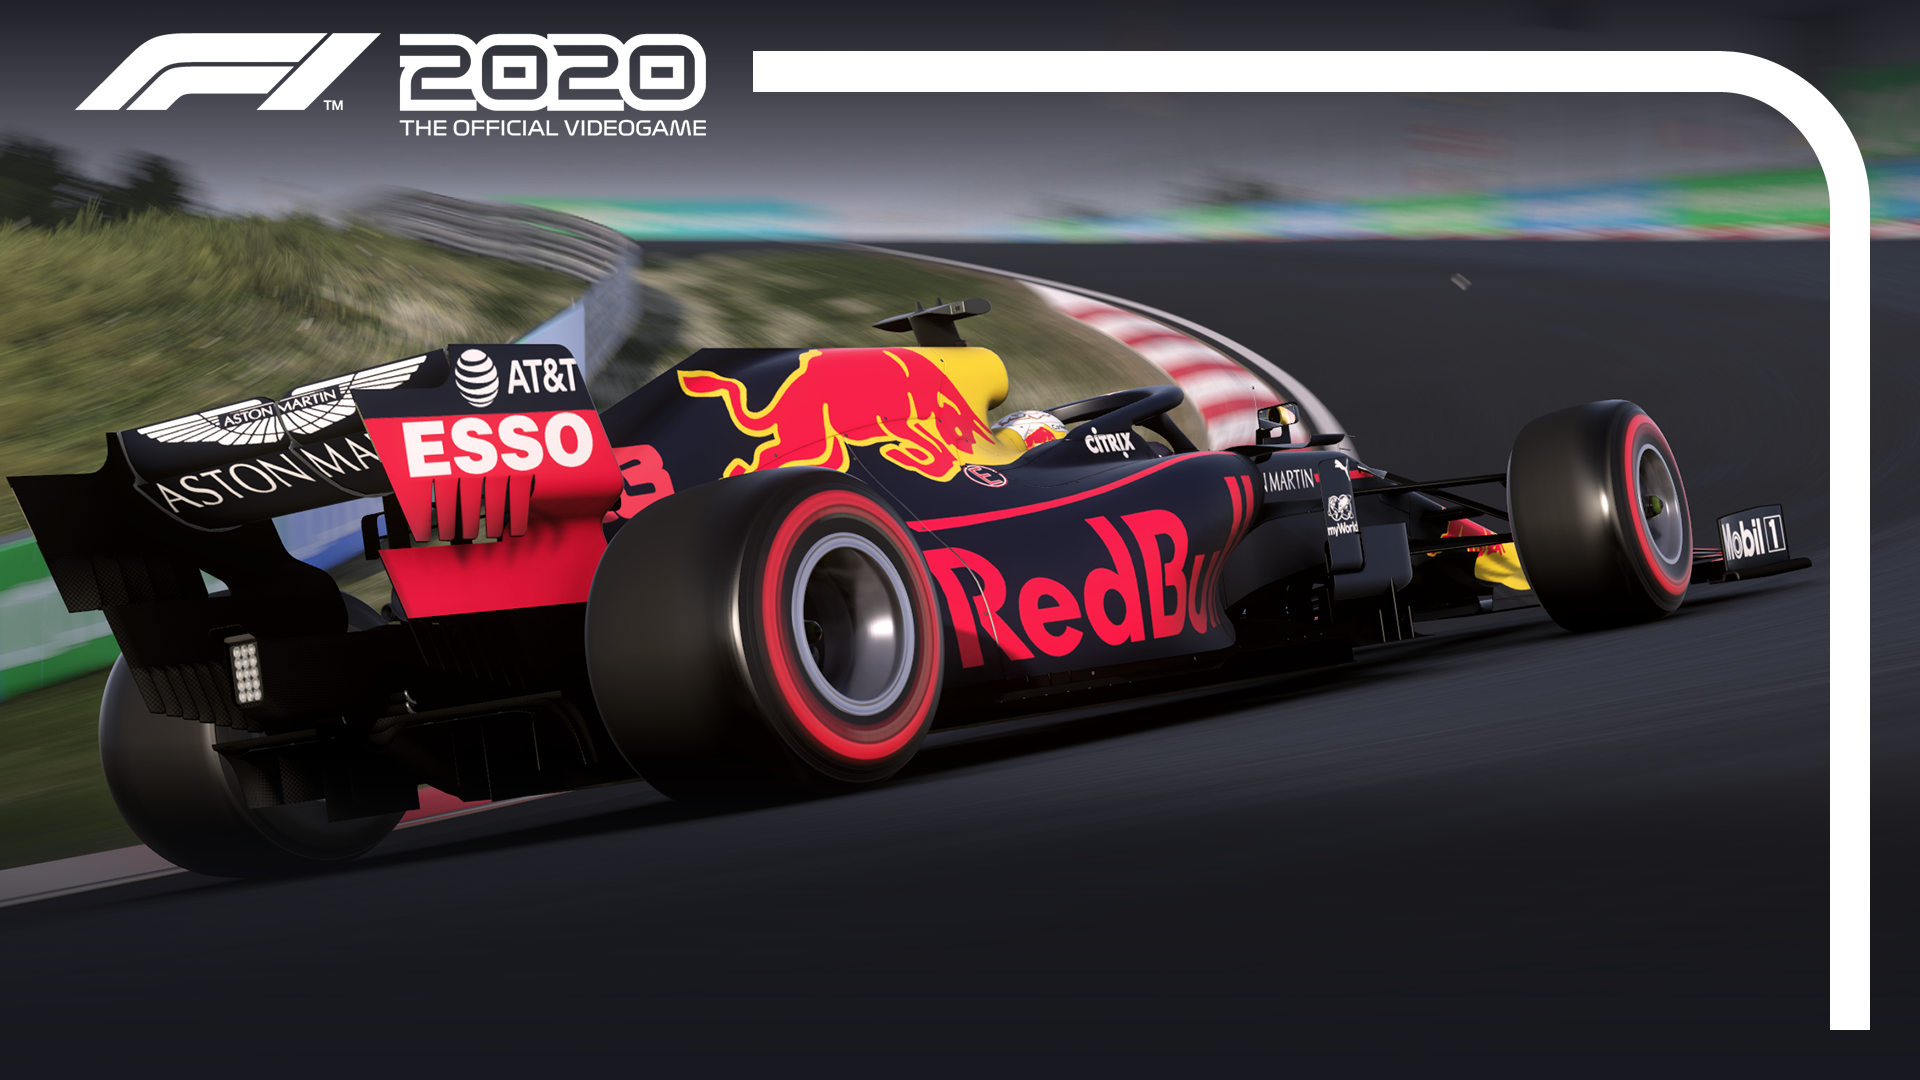 Codemasters Takes To Virtual Circuit Zandvoort For F1 2020 First Look Codemasters Racing Ahead